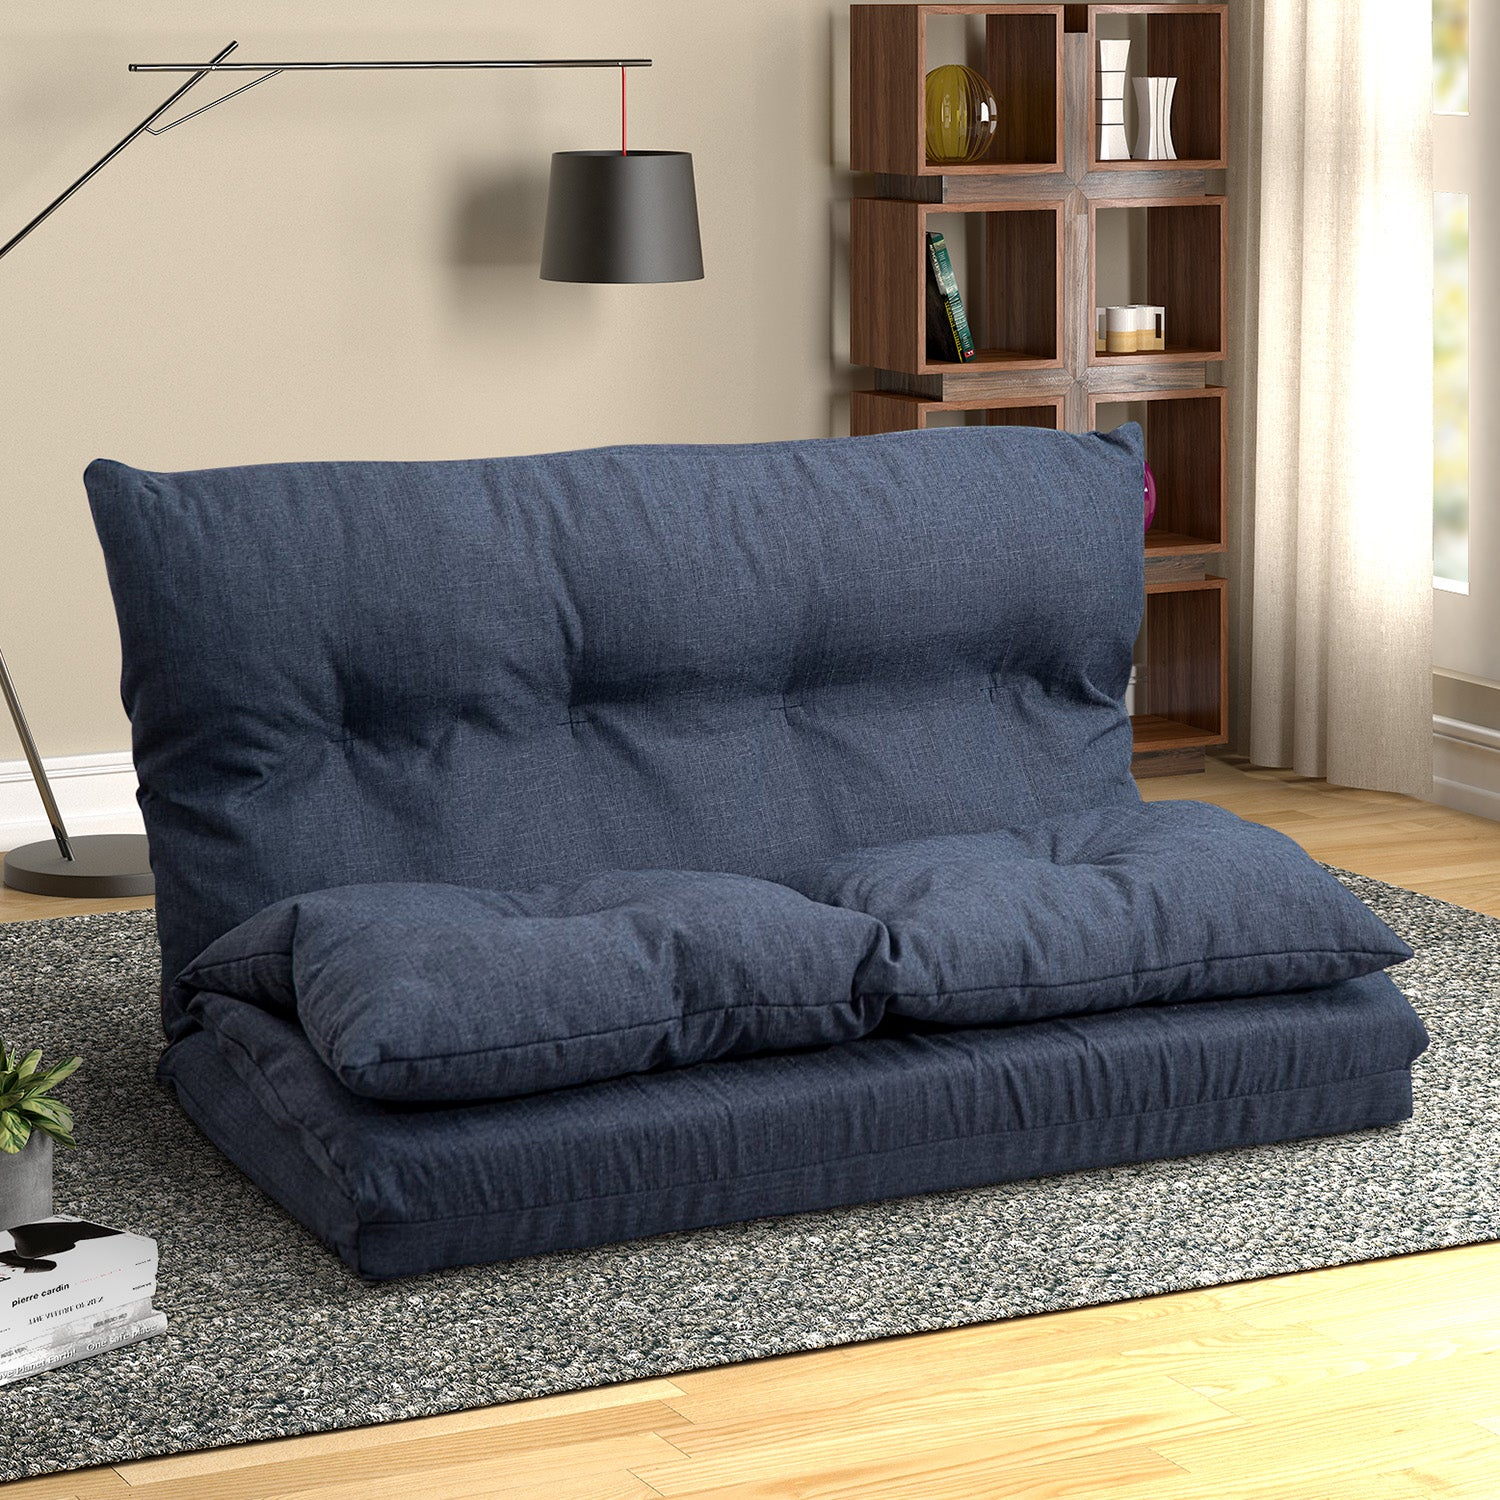 Floor Couch Simple Sofa Fabric Folding Chaise Lounge